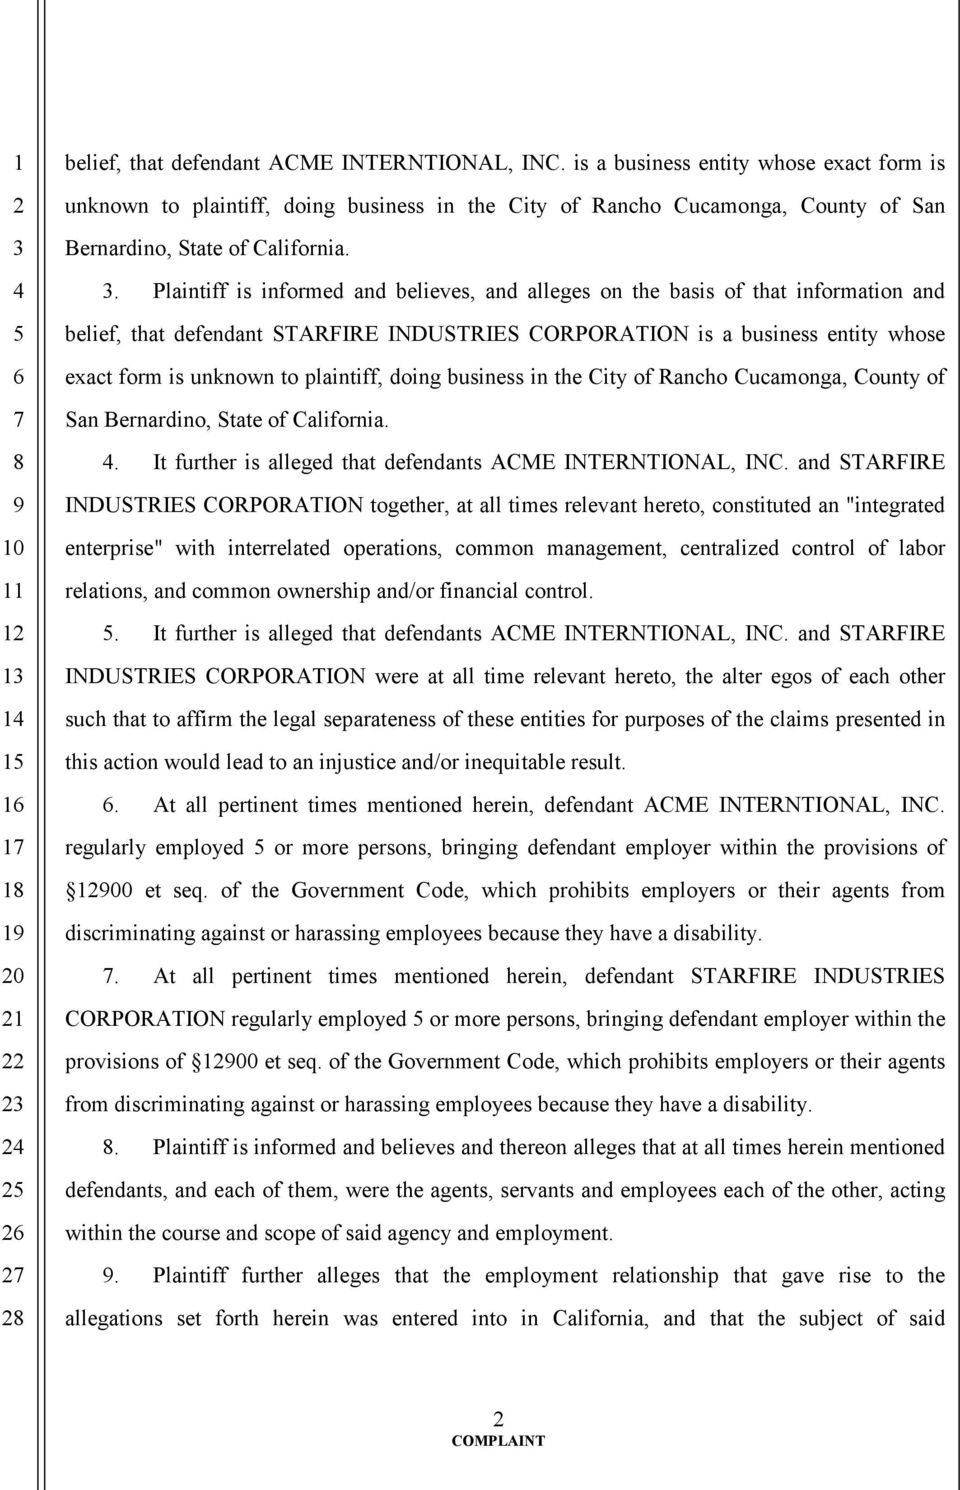 . Plaintiff is informed and believes, and alleges on the basis of that information and belief, that defendant STARFIRE INDUSTRIES CORPORATION .